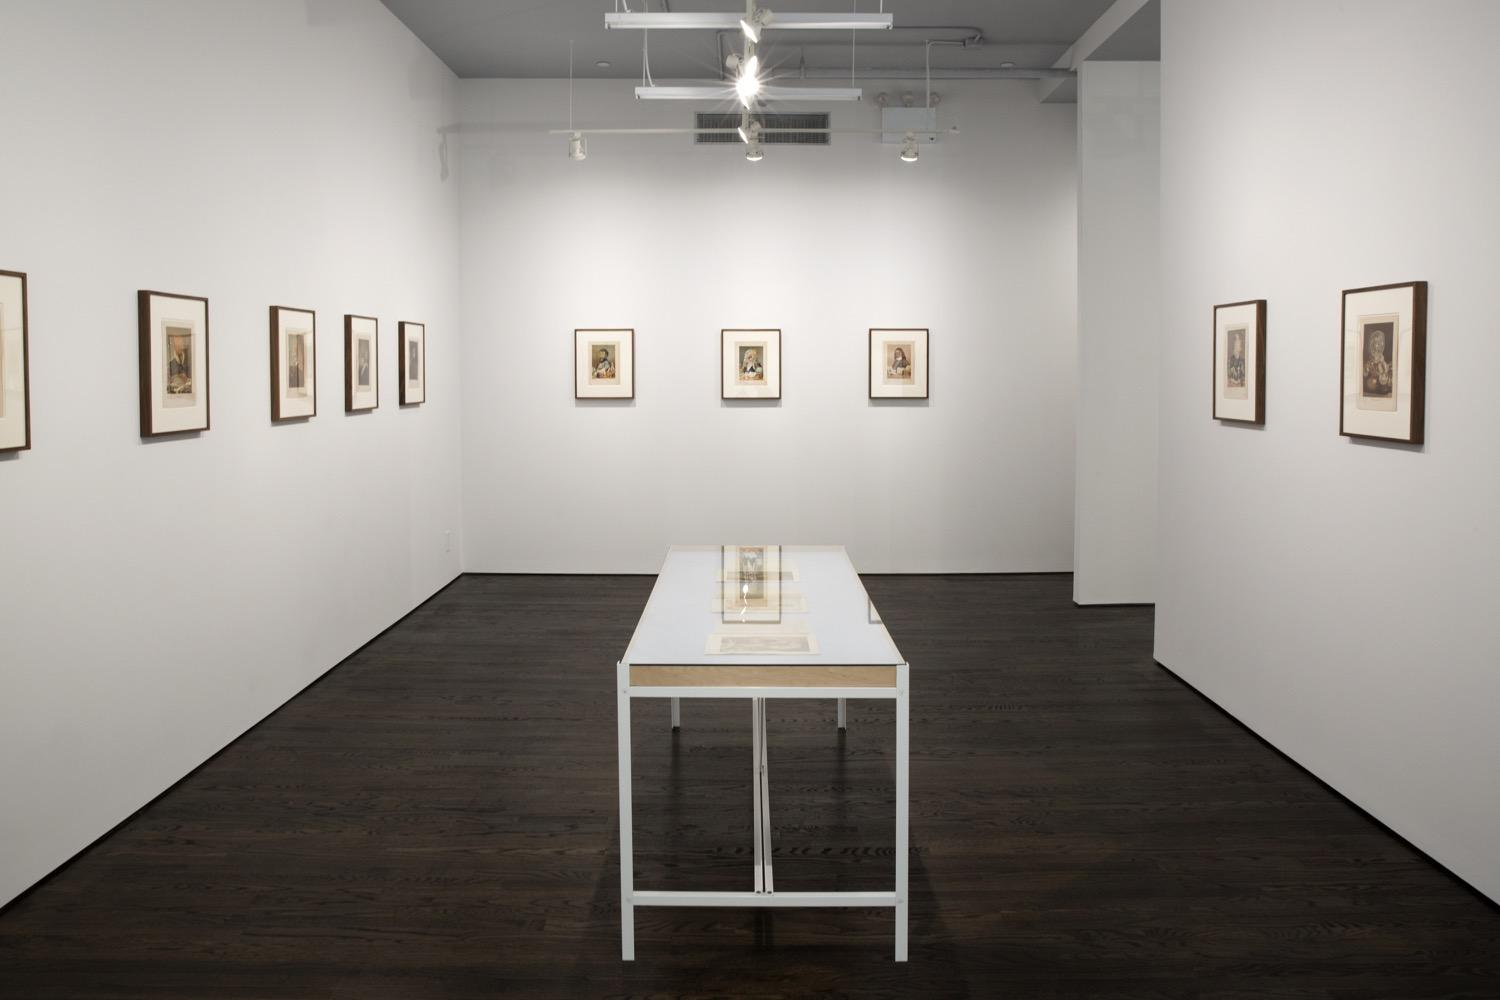 Dr. Lakra, installation view, 2018 (Nine collages identically sized are installed on three walls in a uniform row: four on the left wall, three on the back, and two on the right. In the center of the room there is a vitrine that displays three additional collages.)